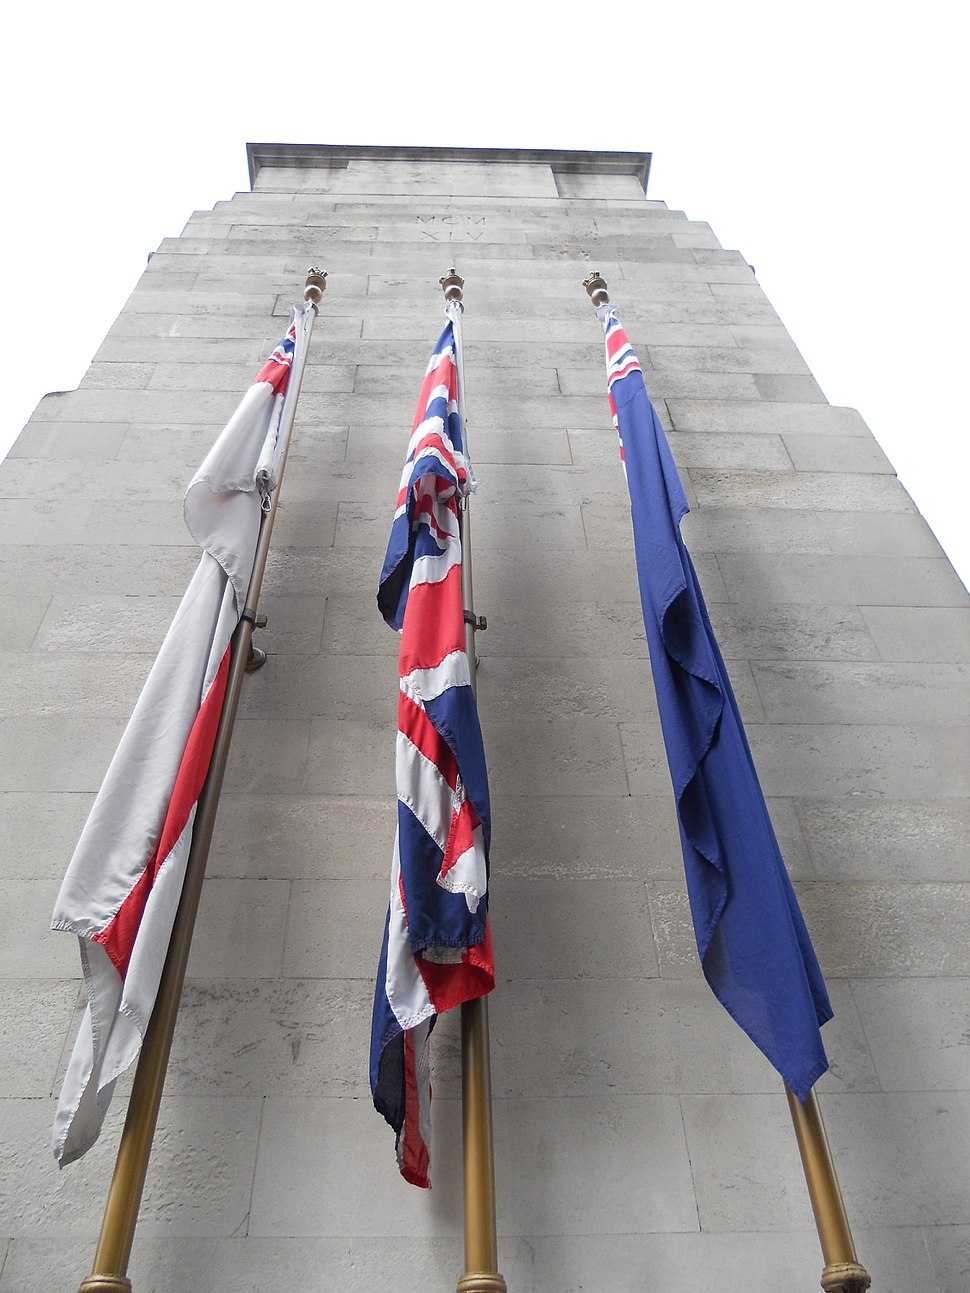 The Cenotaph, Whitehall, London (14 July 2011) 4